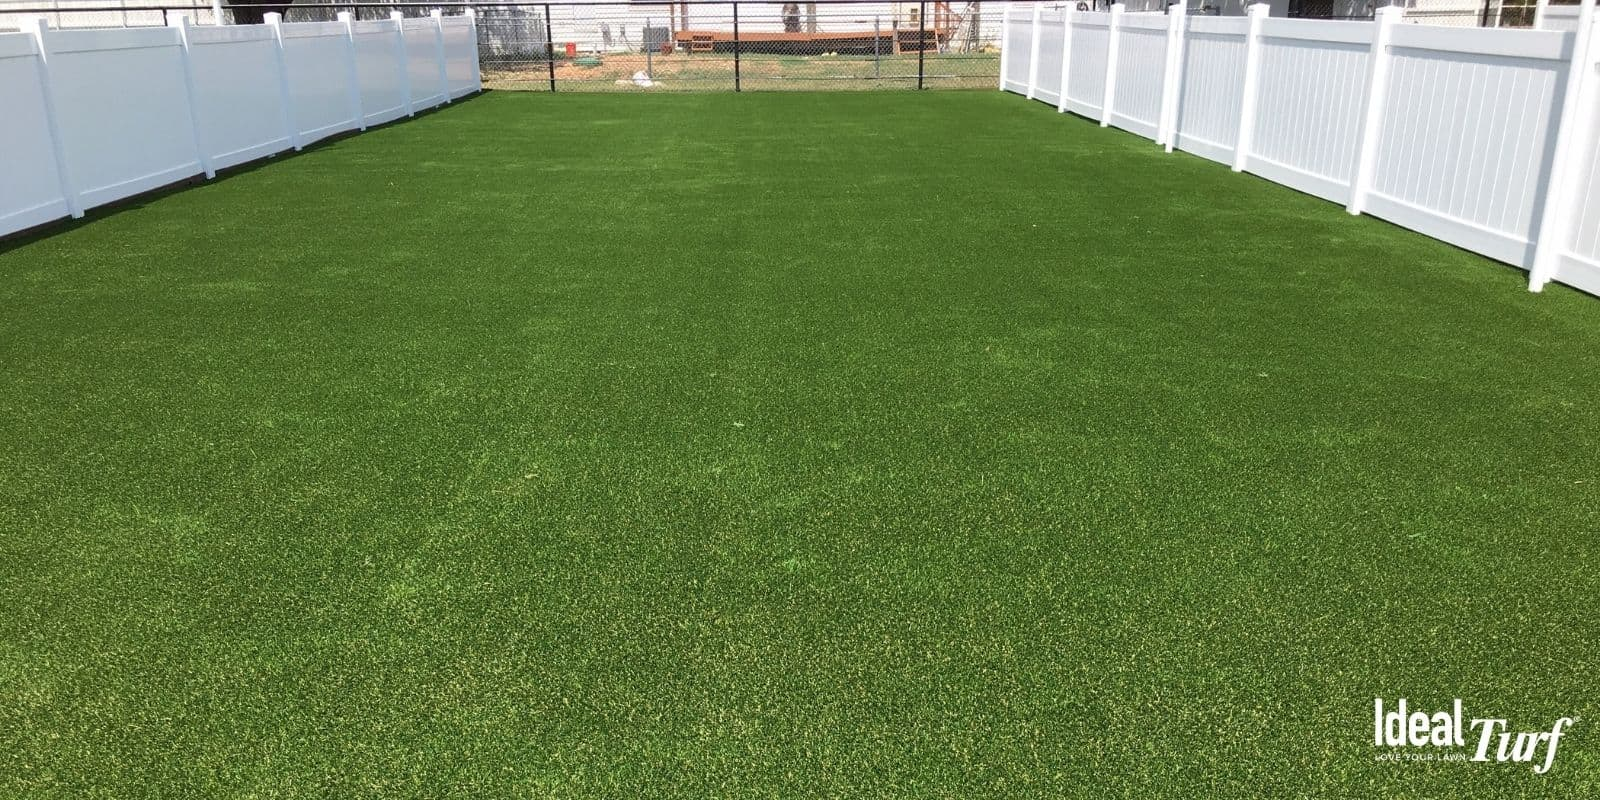 Dog Run With Artificial Grass from Ideal Turf